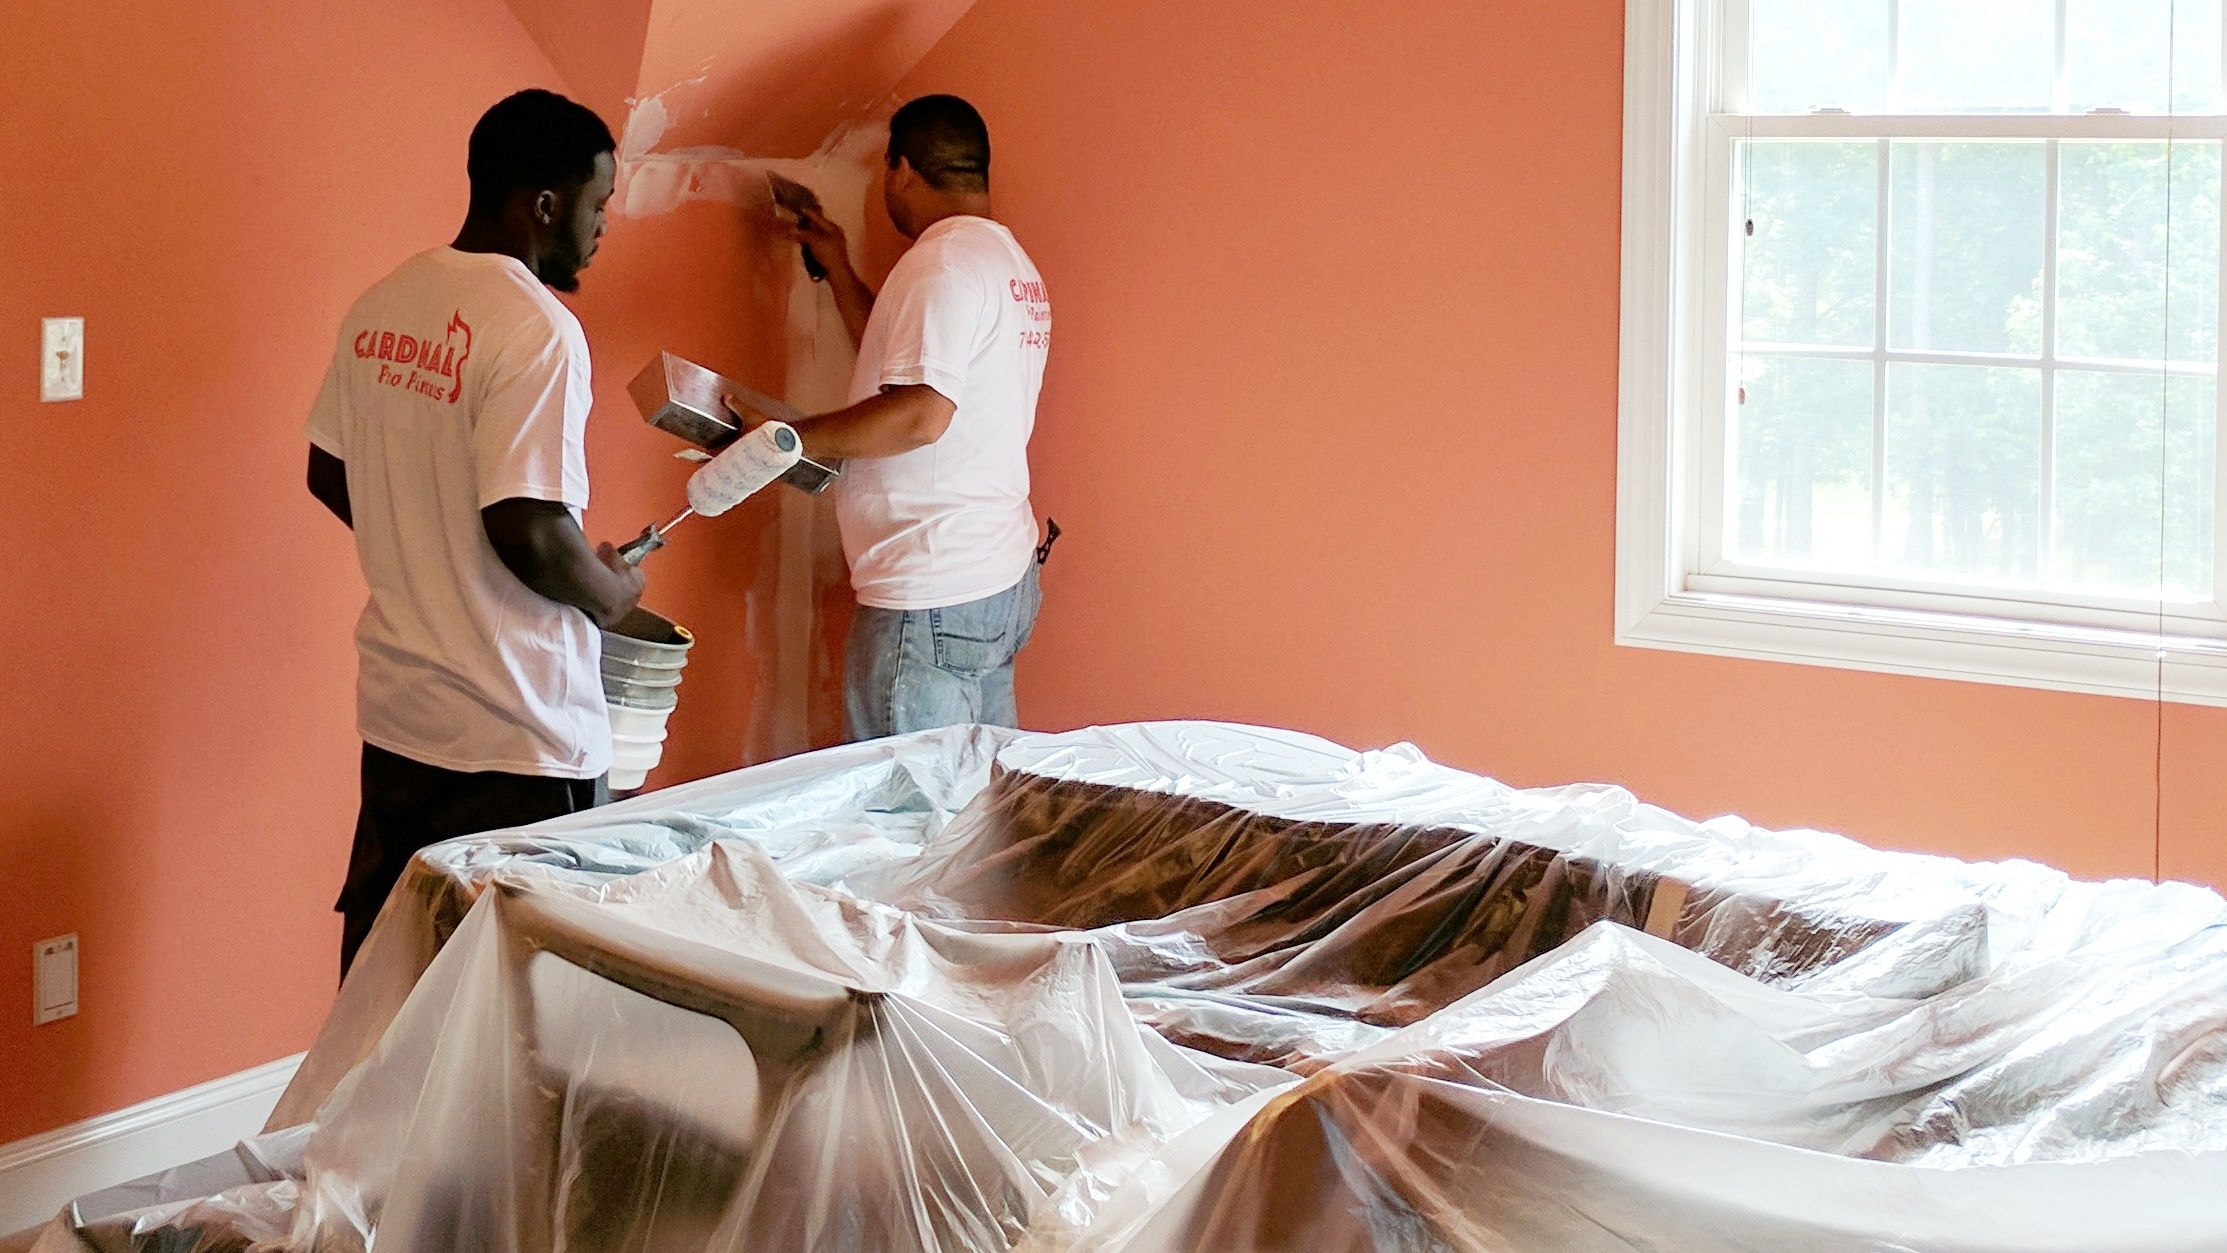 Interior Painting In Charlotte, NC With Cardinal Pro Painters  #InteriorPainting #PaintingContractor #Charlotte